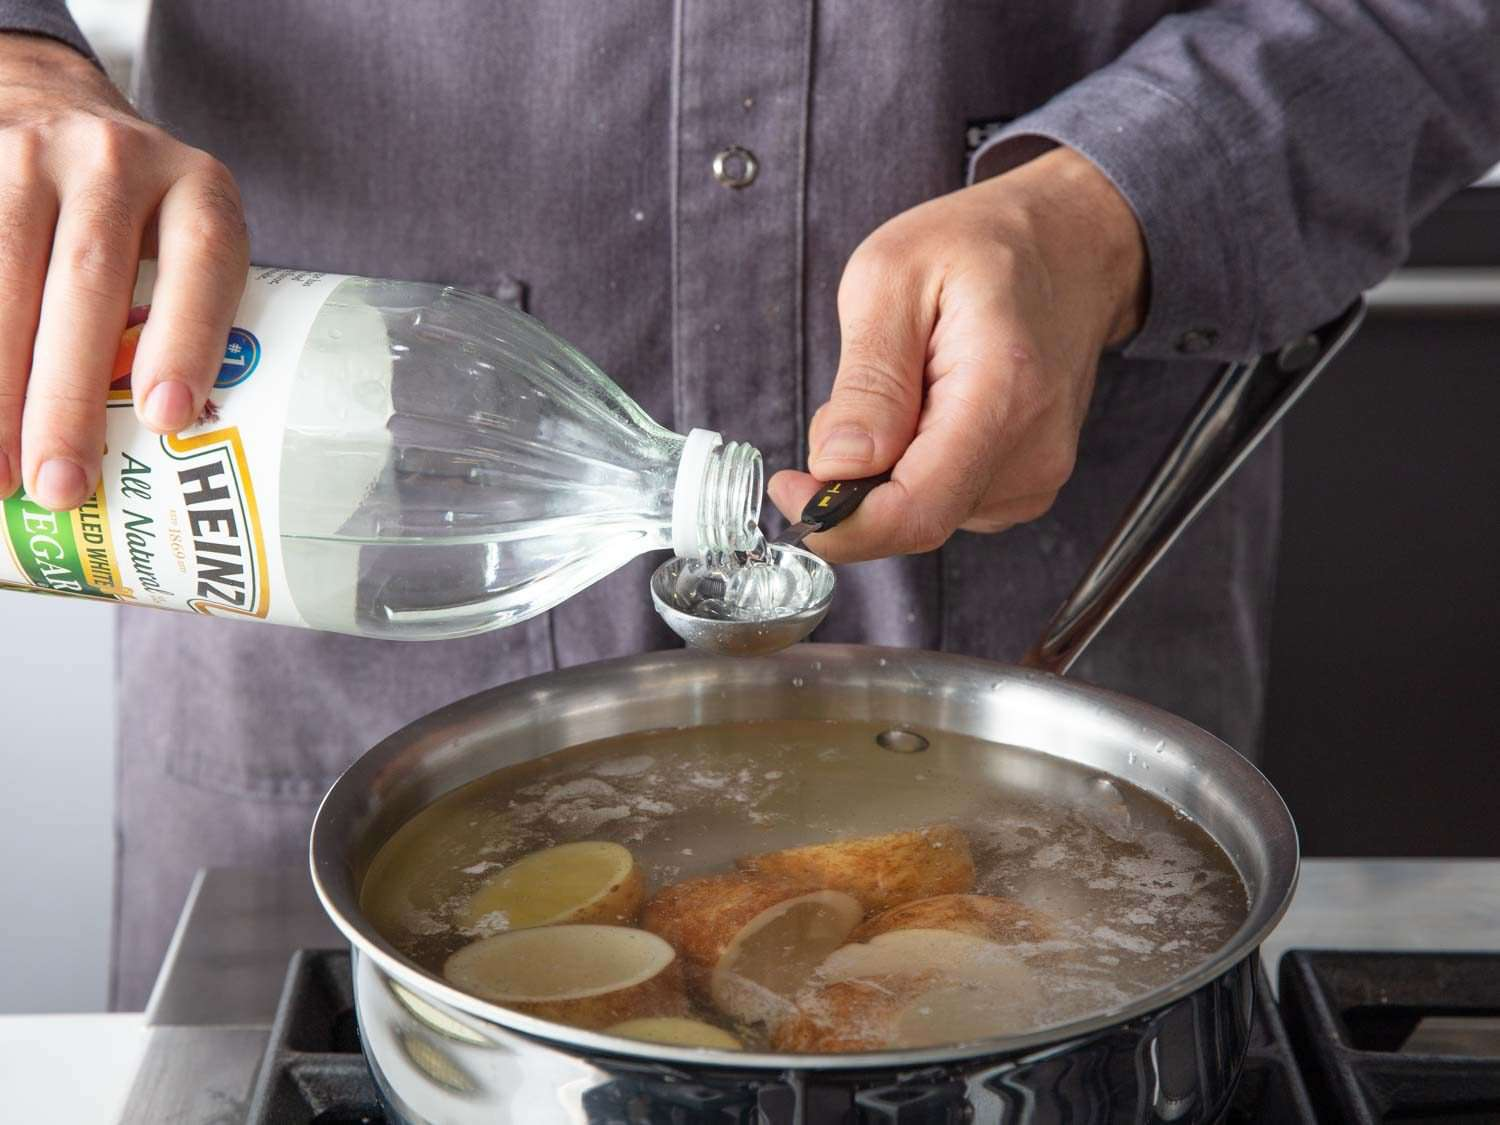 Attempting Serious Eats' French fry method using potato skin cups by boiling the potatoes first with salty and vinegary water